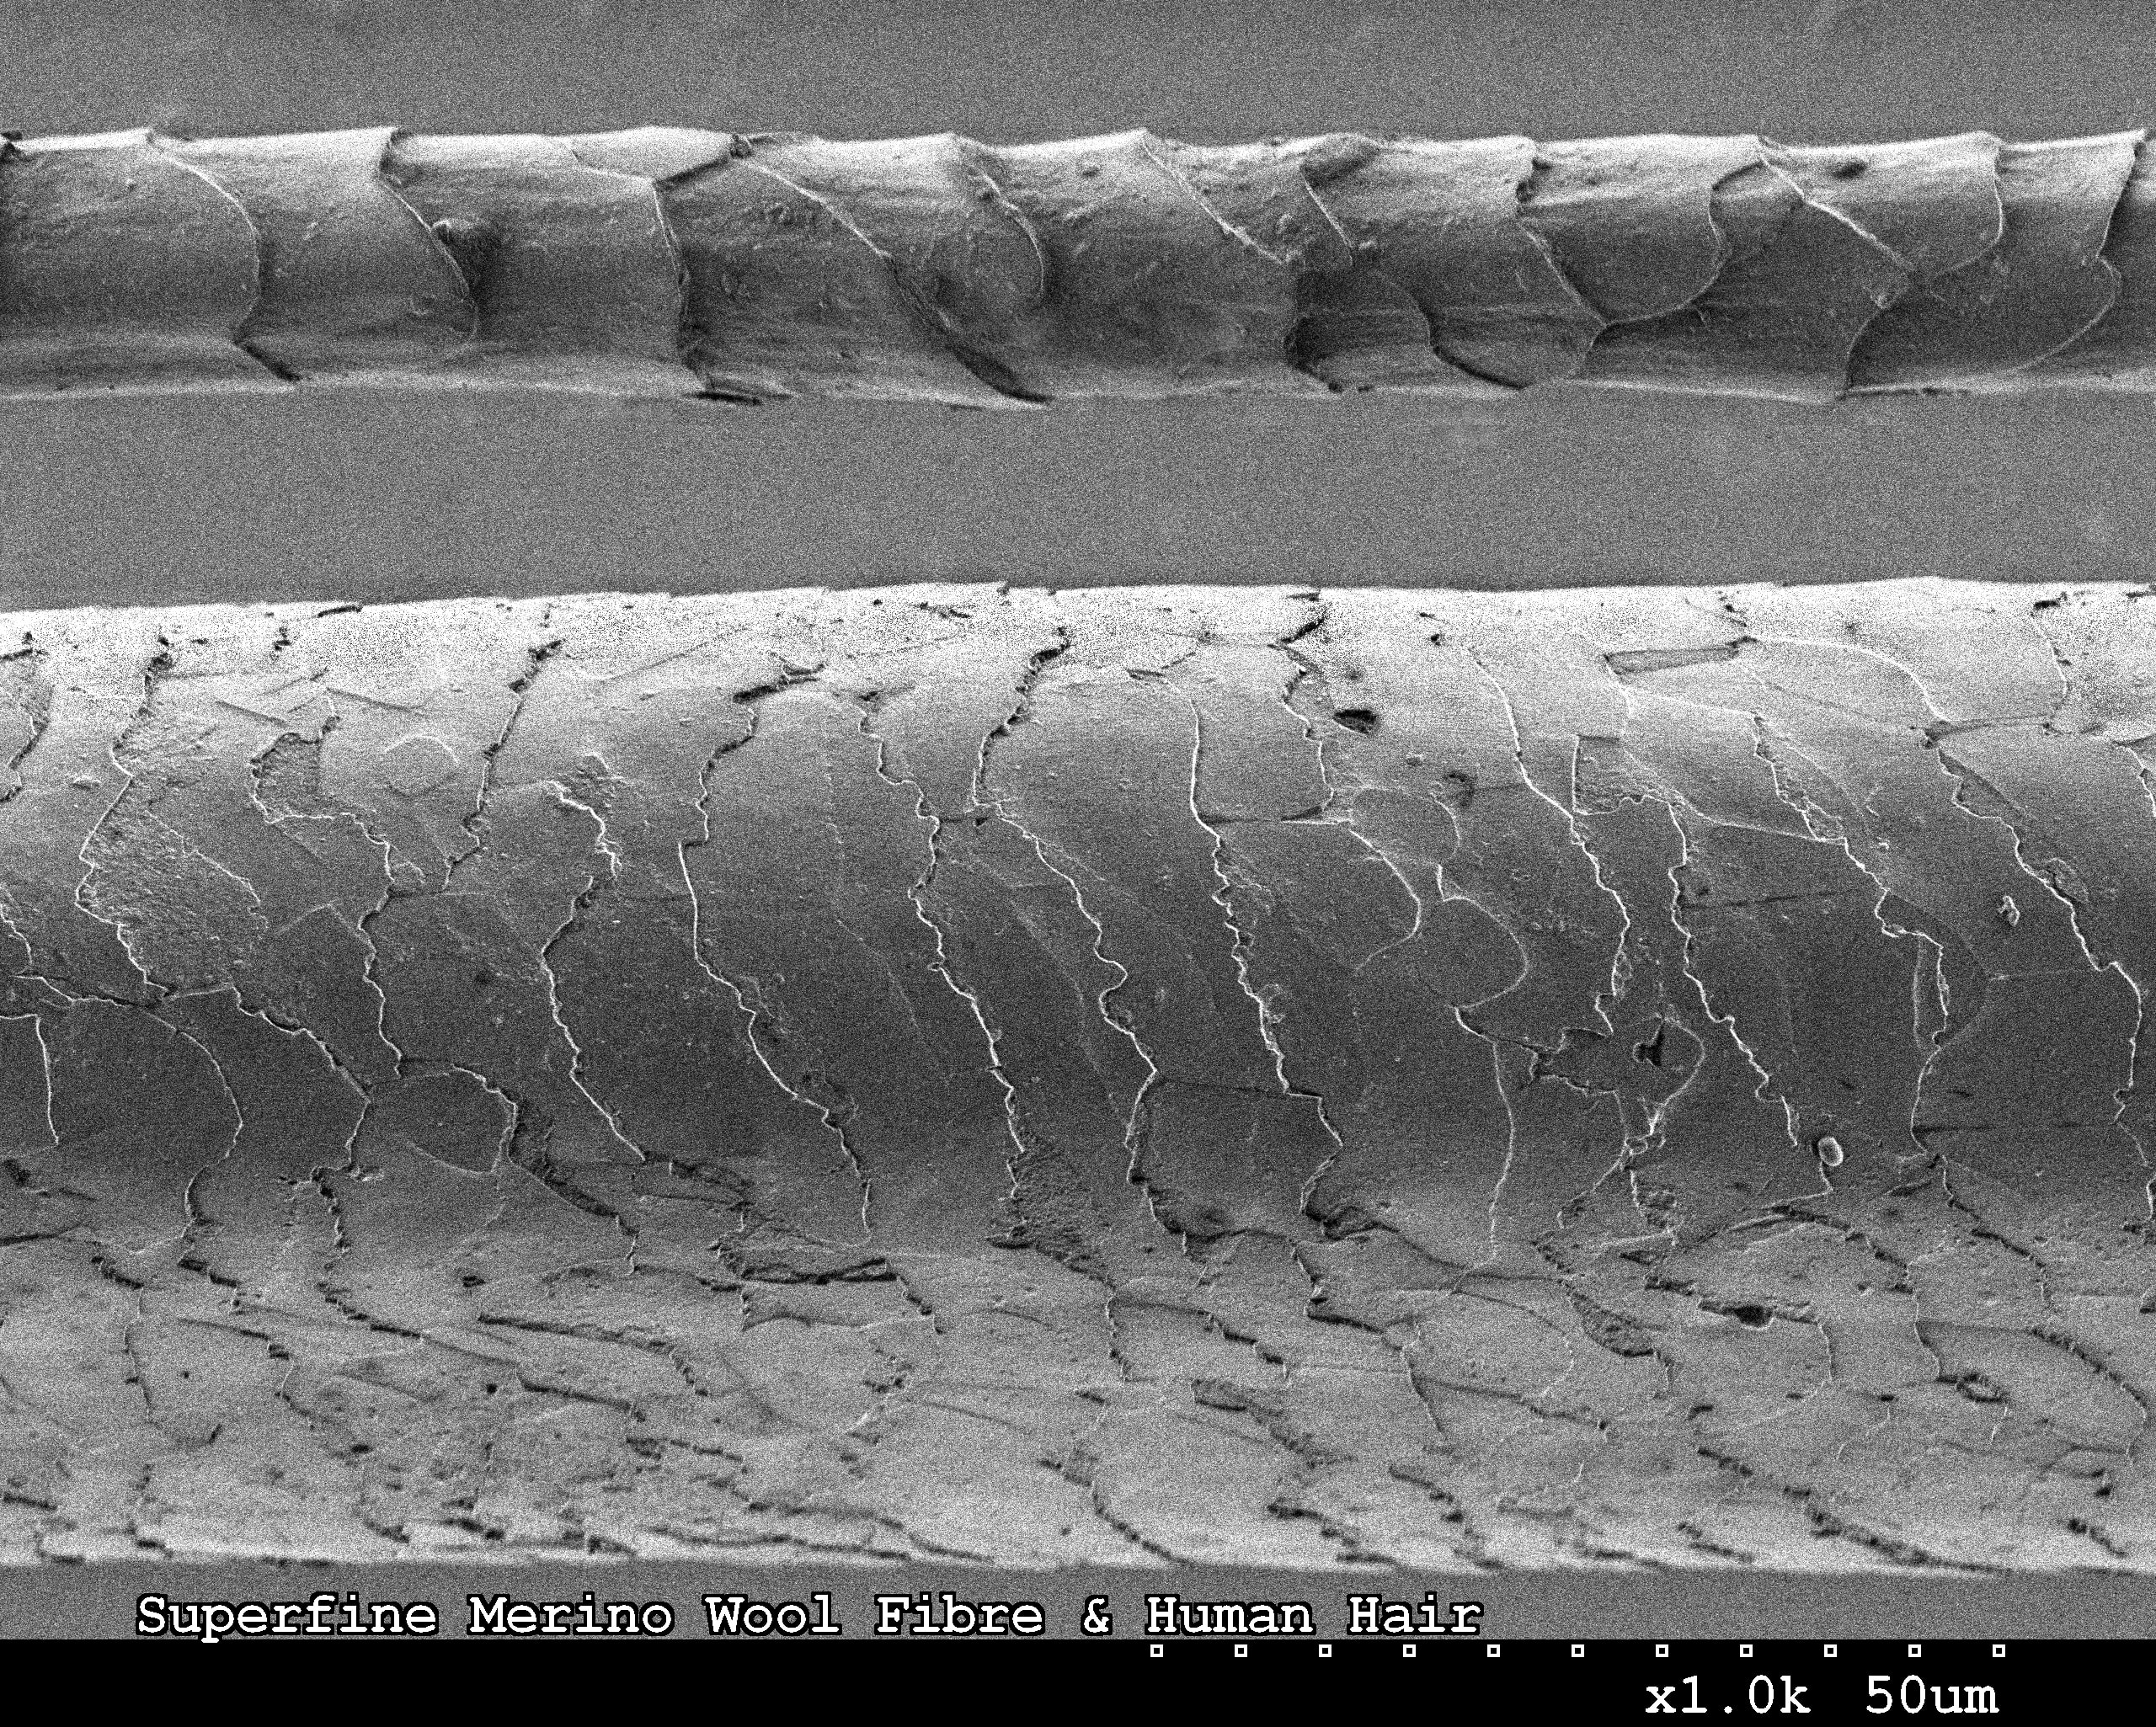 A scanning electron microscope image showing the difference in size and texture between a superfine Merino wool fibre (top) and a human hair